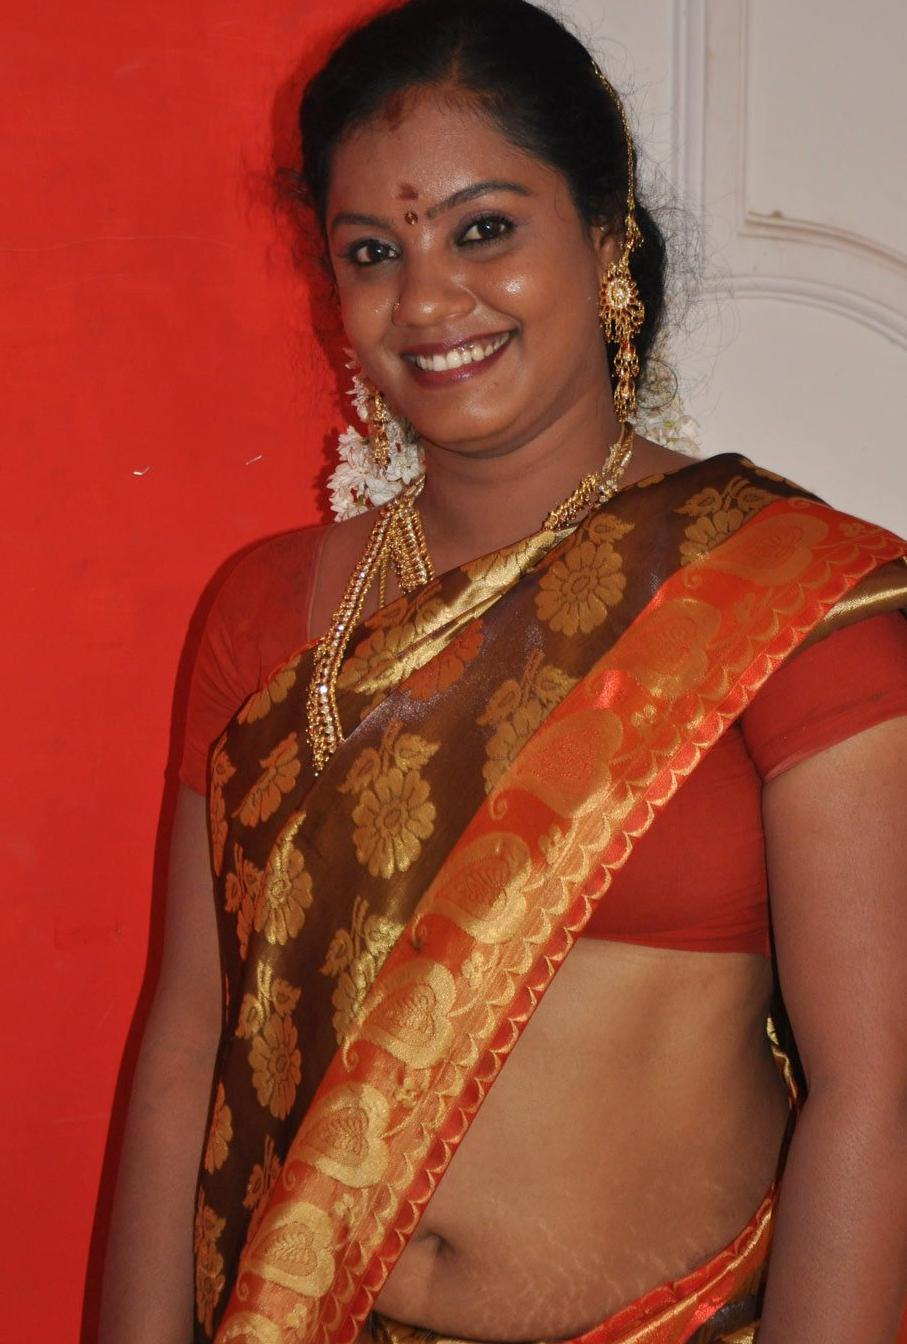 Homely Hot Aunty Deep Navel Show in RED SAREE | Gsv Pics - Photos with ...